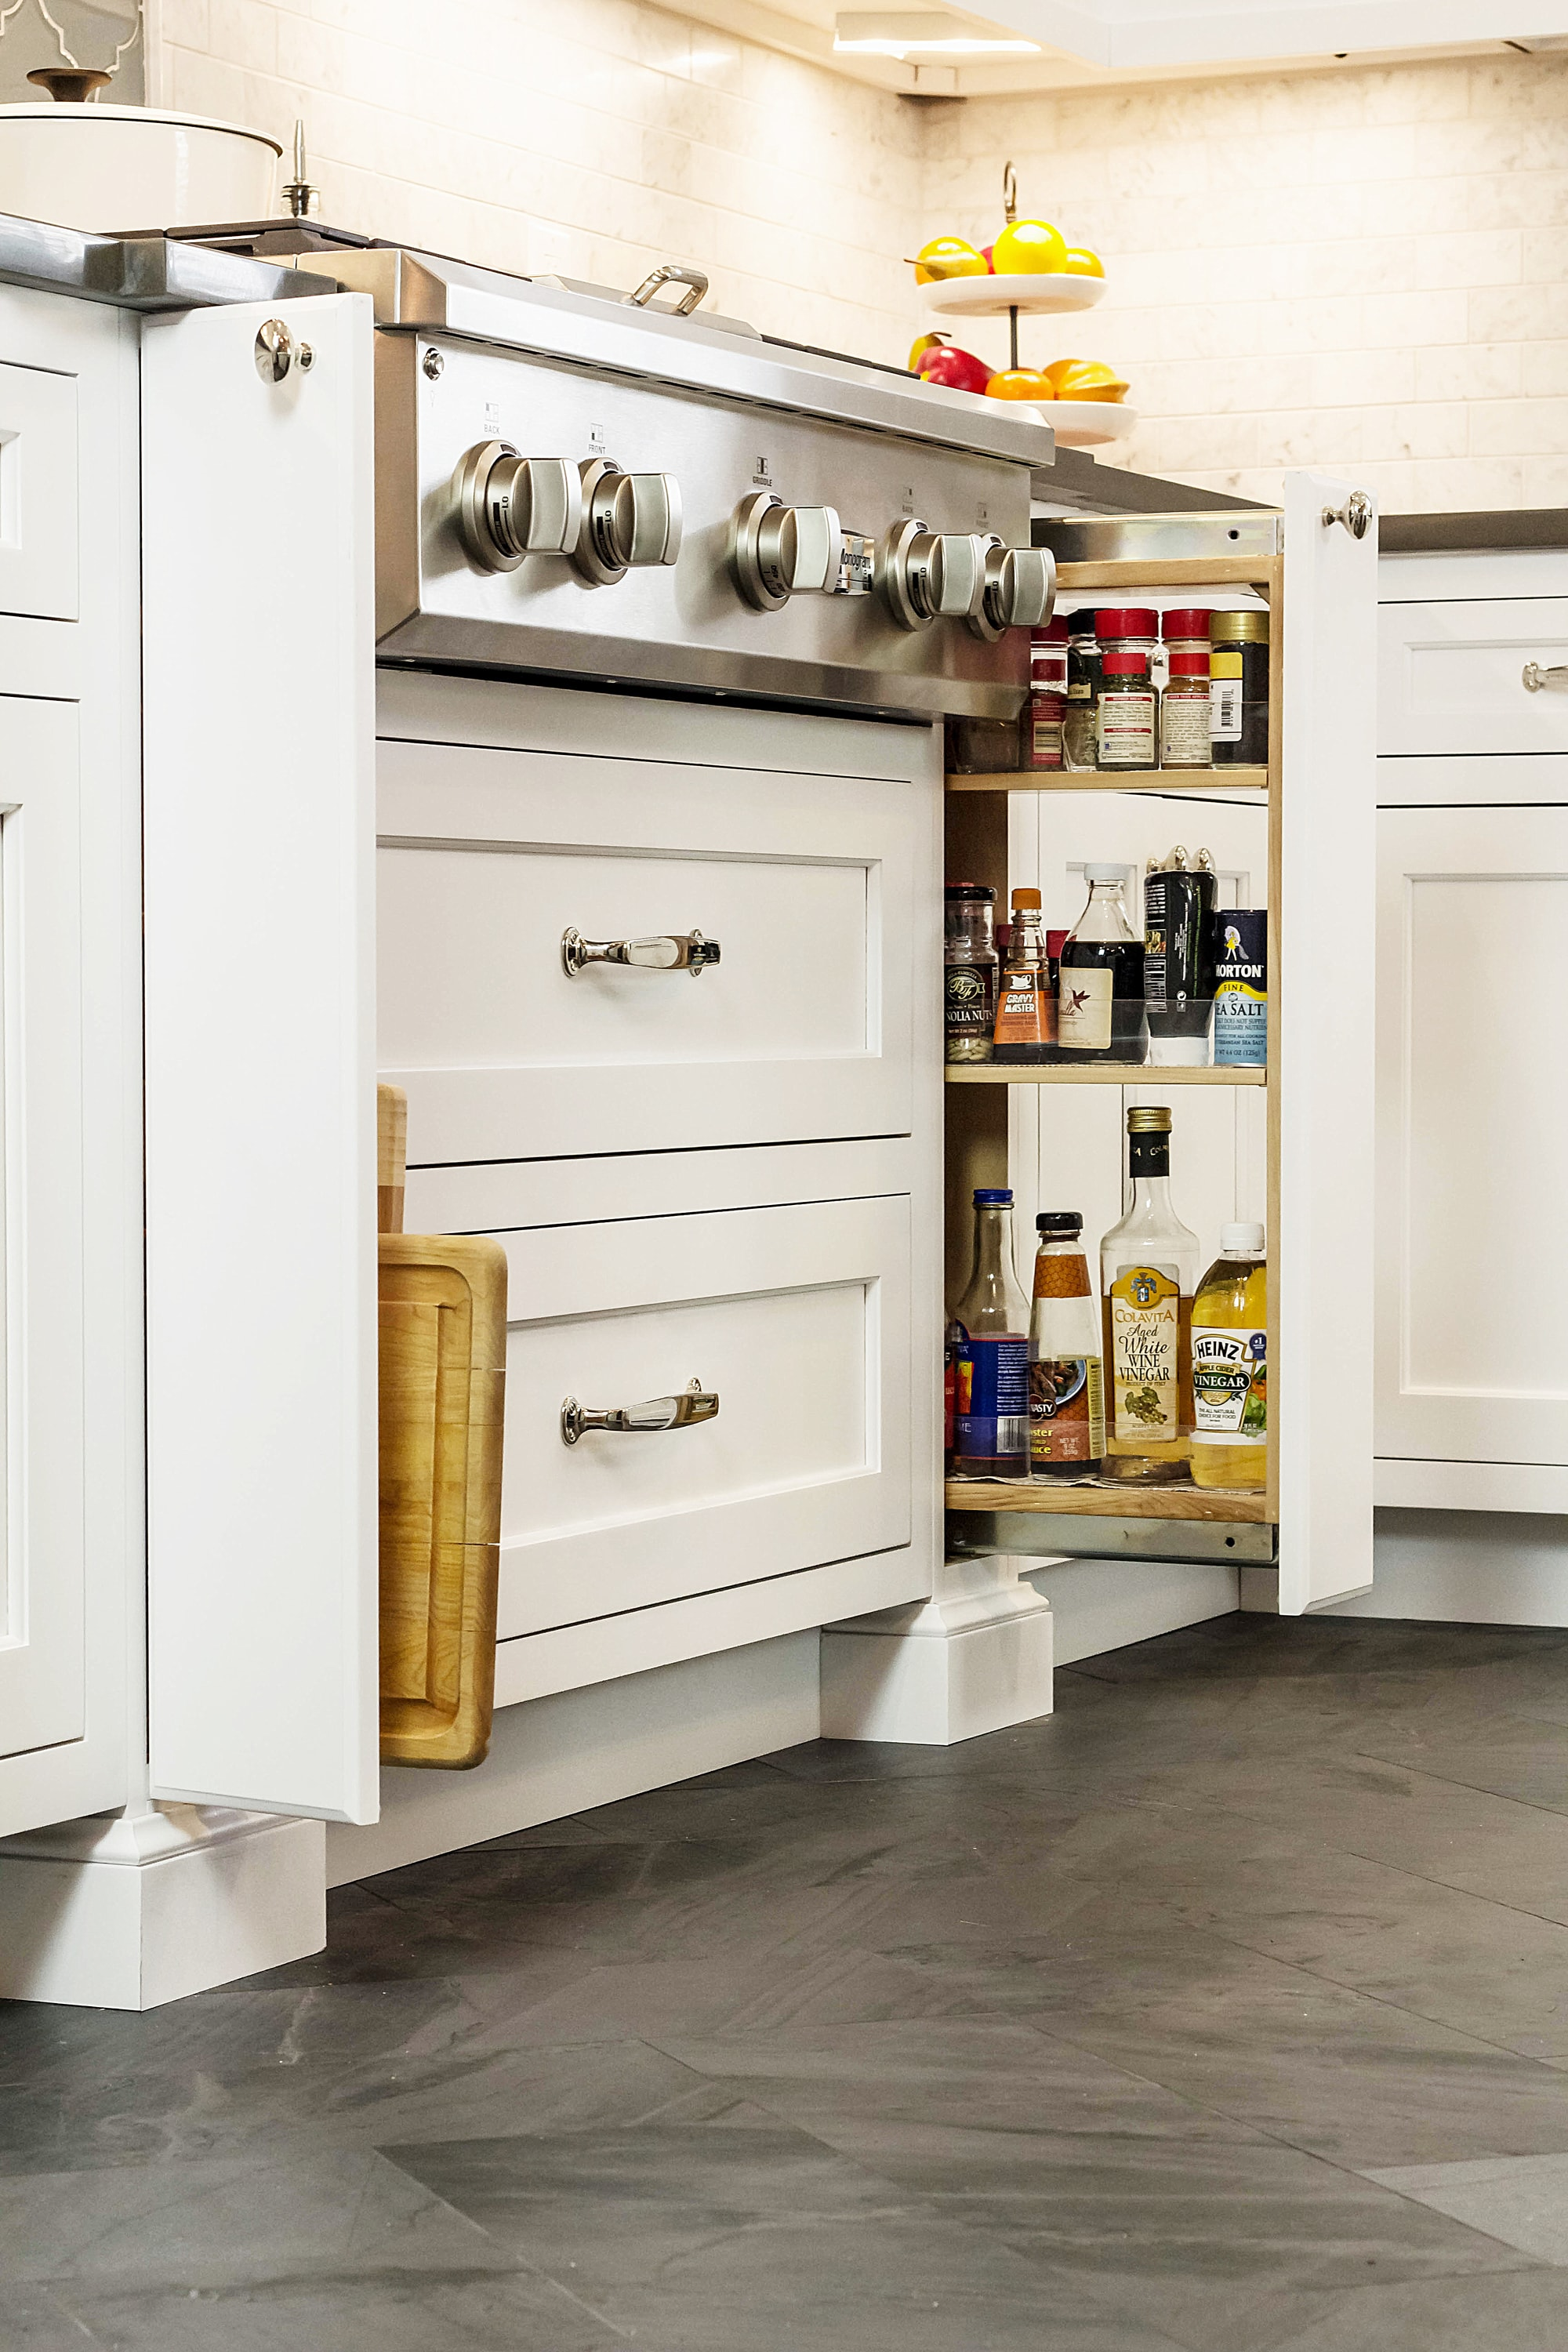 Traditional style kitchen with space saving storage